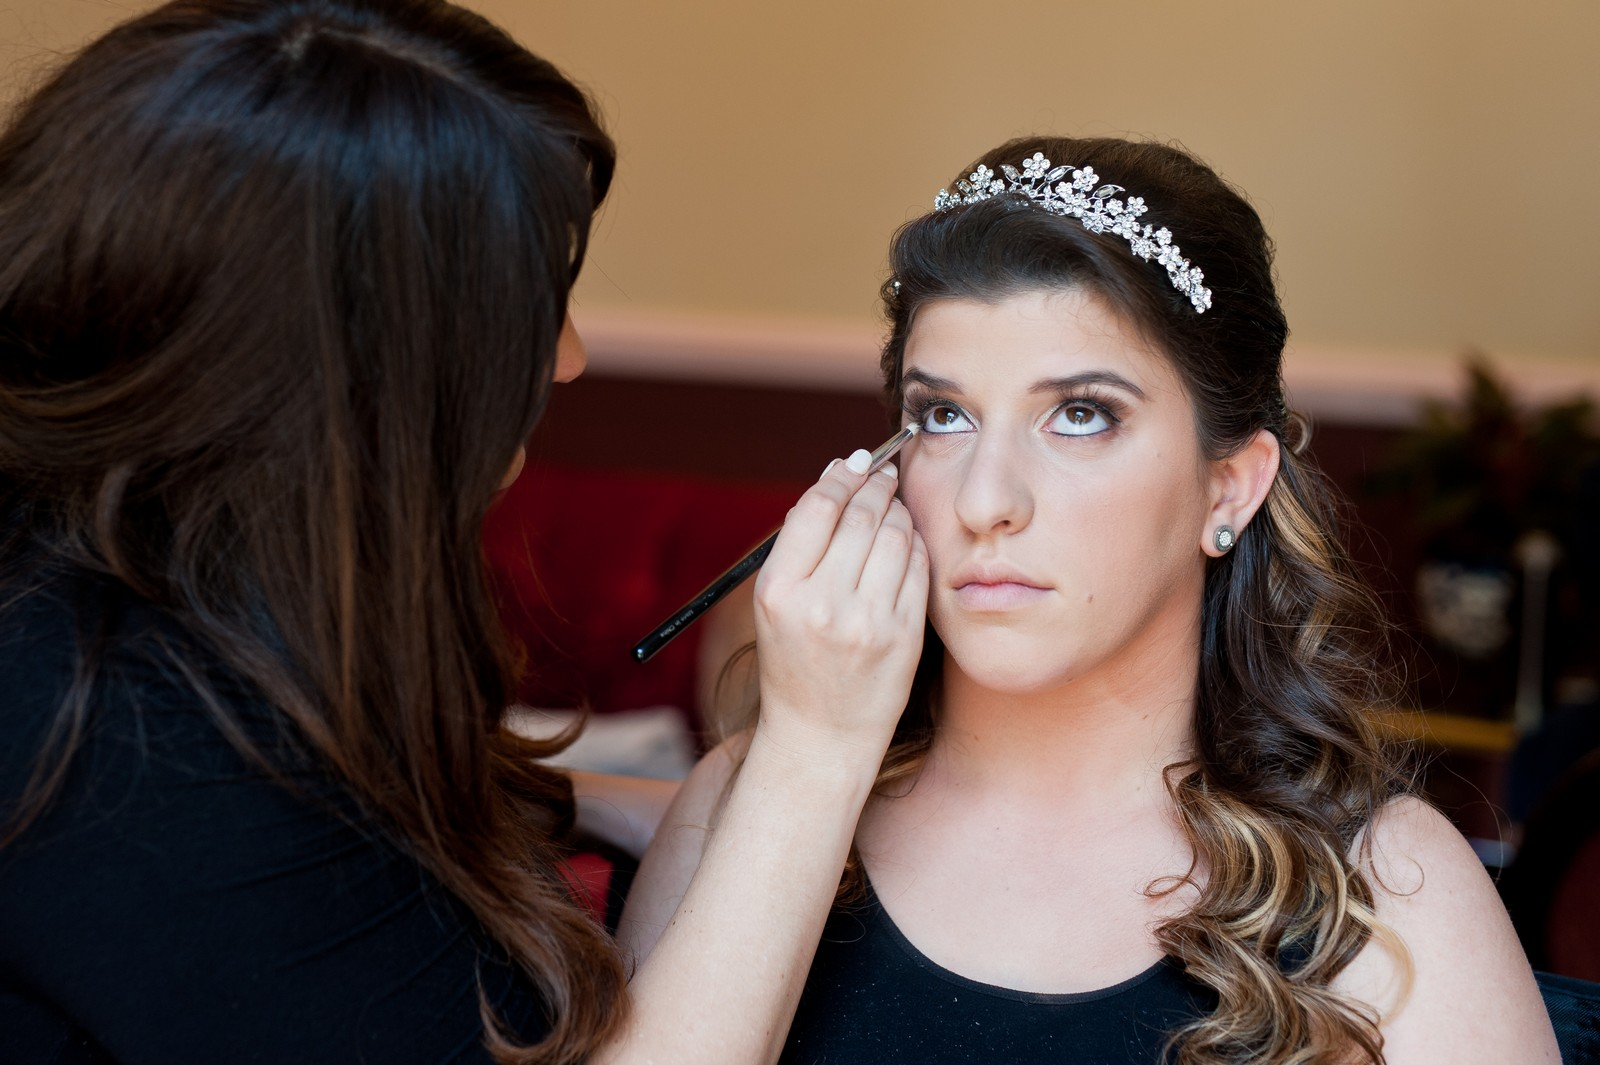 Orthodox Jewish Wedding, Dyker Beach Park and Golf Course, Brooklyn, New York, Bride Prep, Makeup, Photo by Chaim Schvarcz